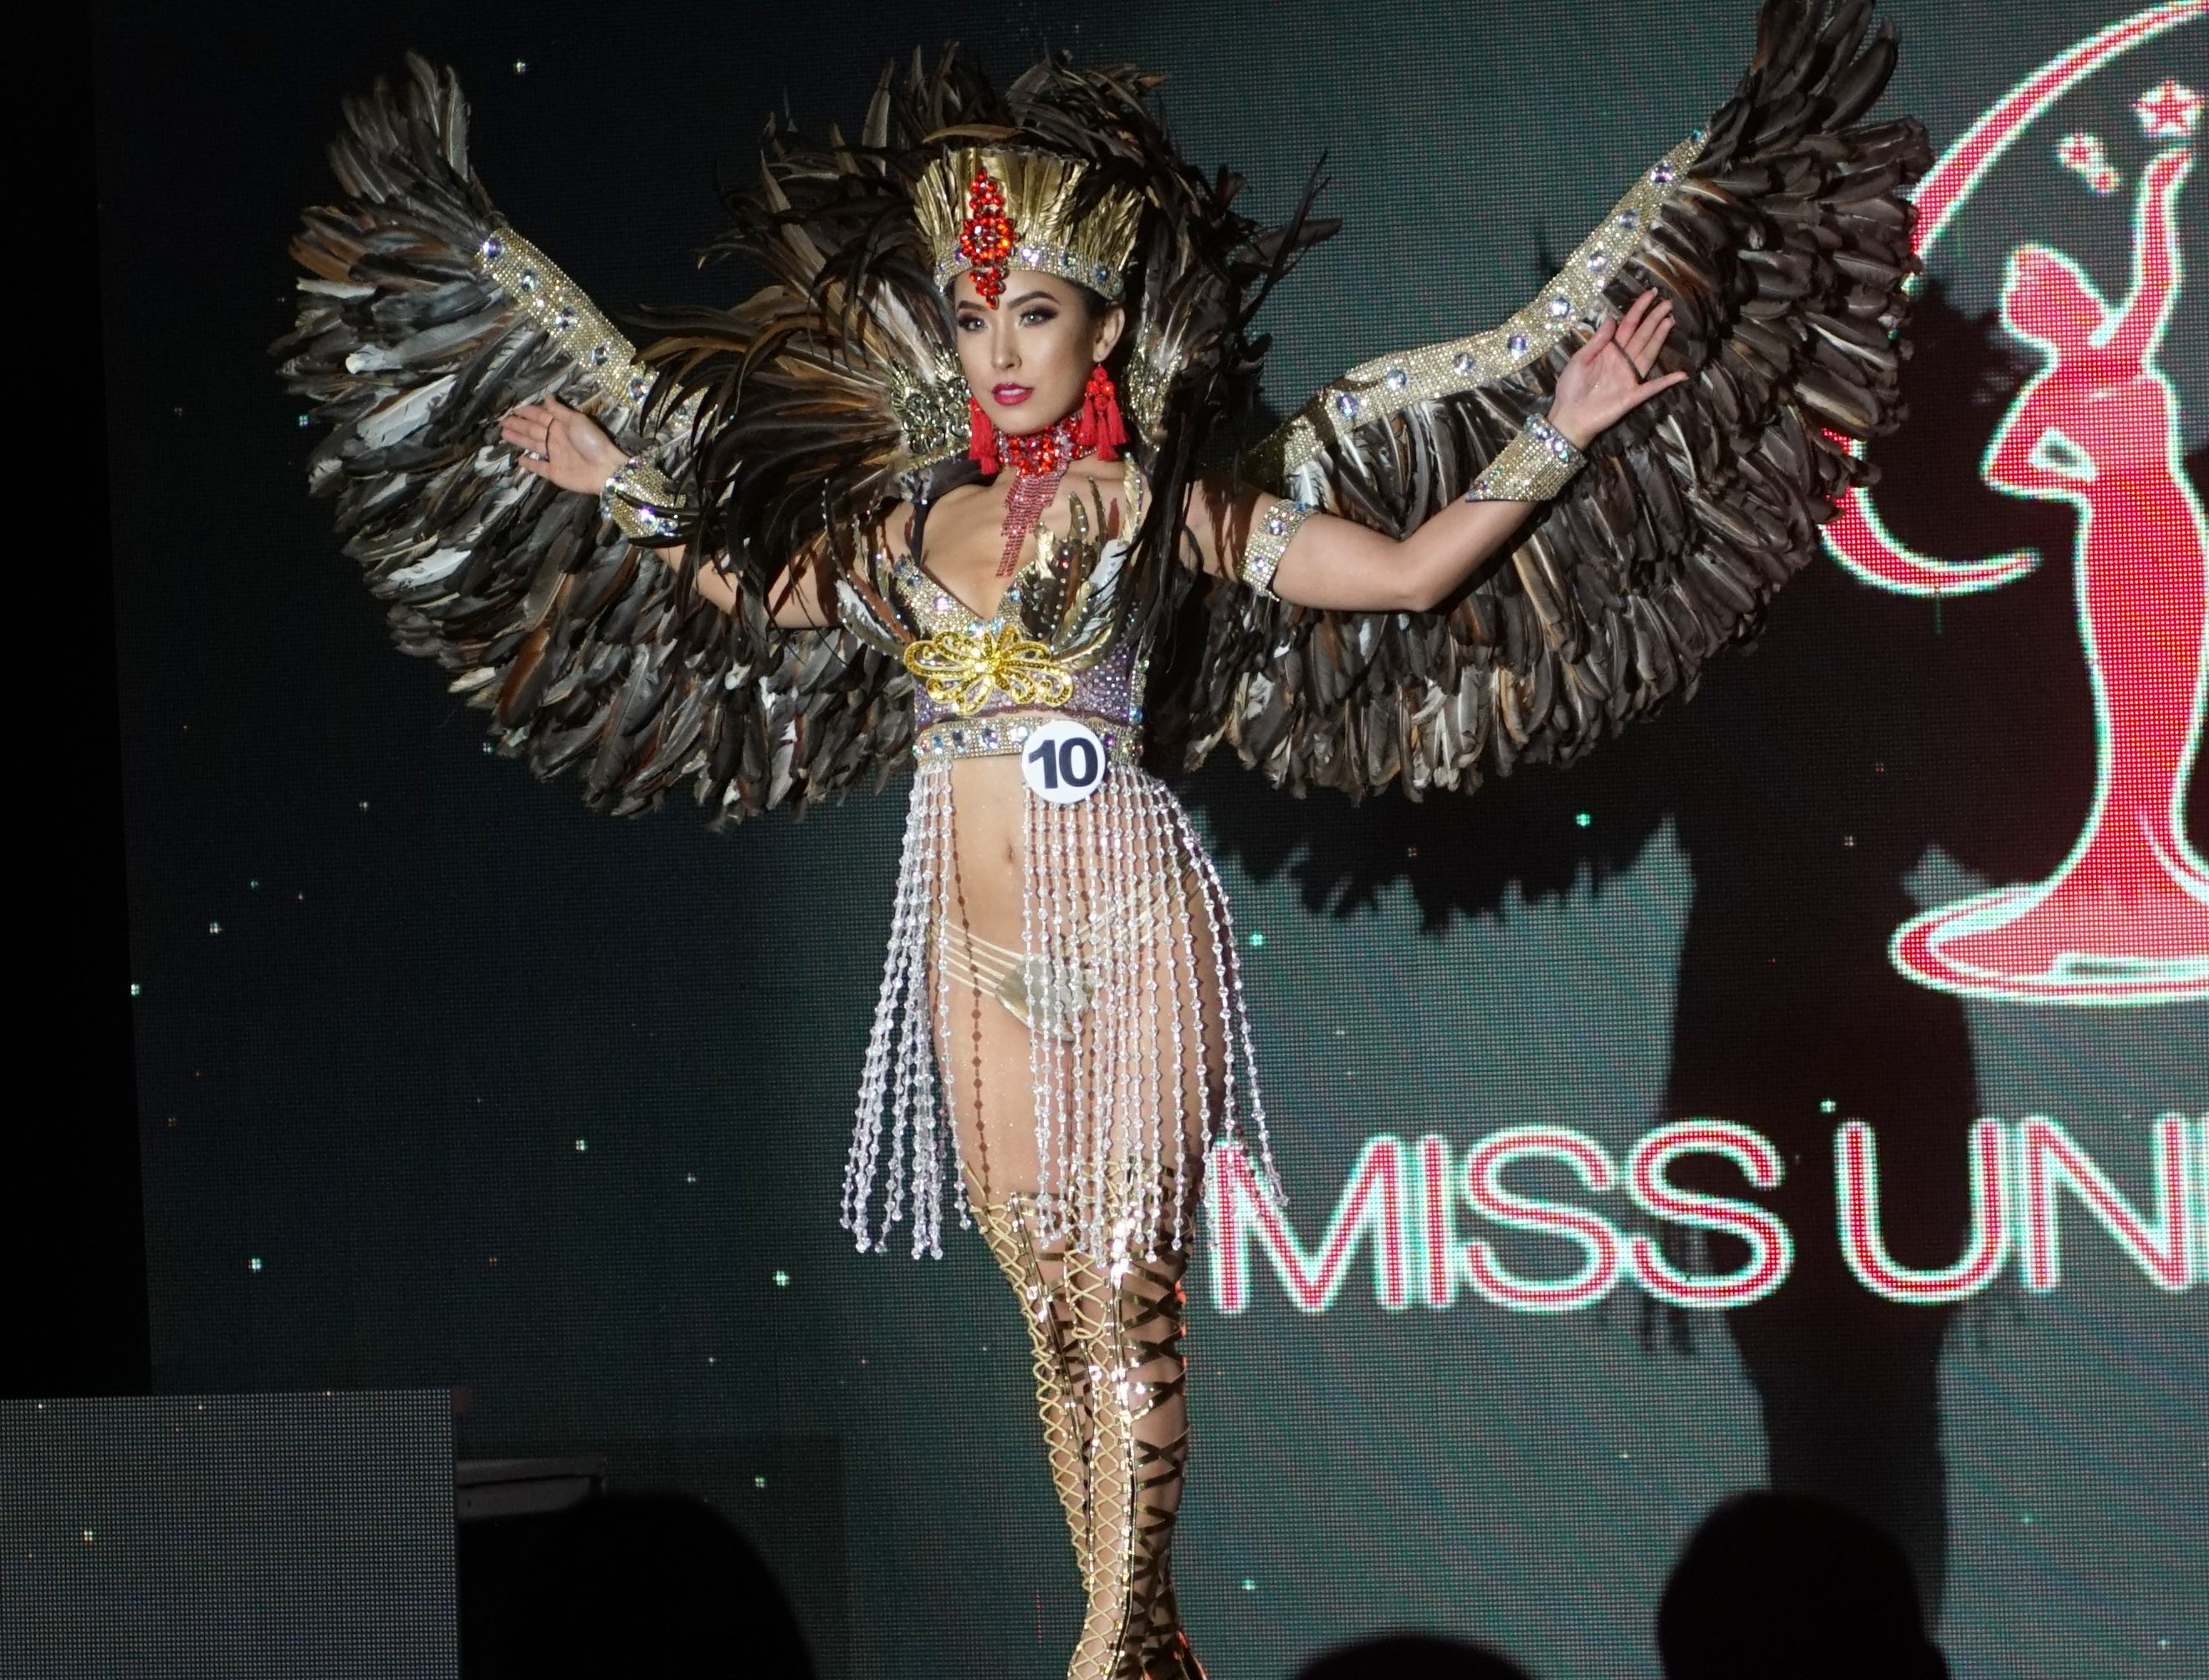 Native Costume portion of the Miss Universe Guam pageant.  Contestant 10 Kirsten Dahilig.  The pageant was held at  Sheraton Laguna Guam Resort.